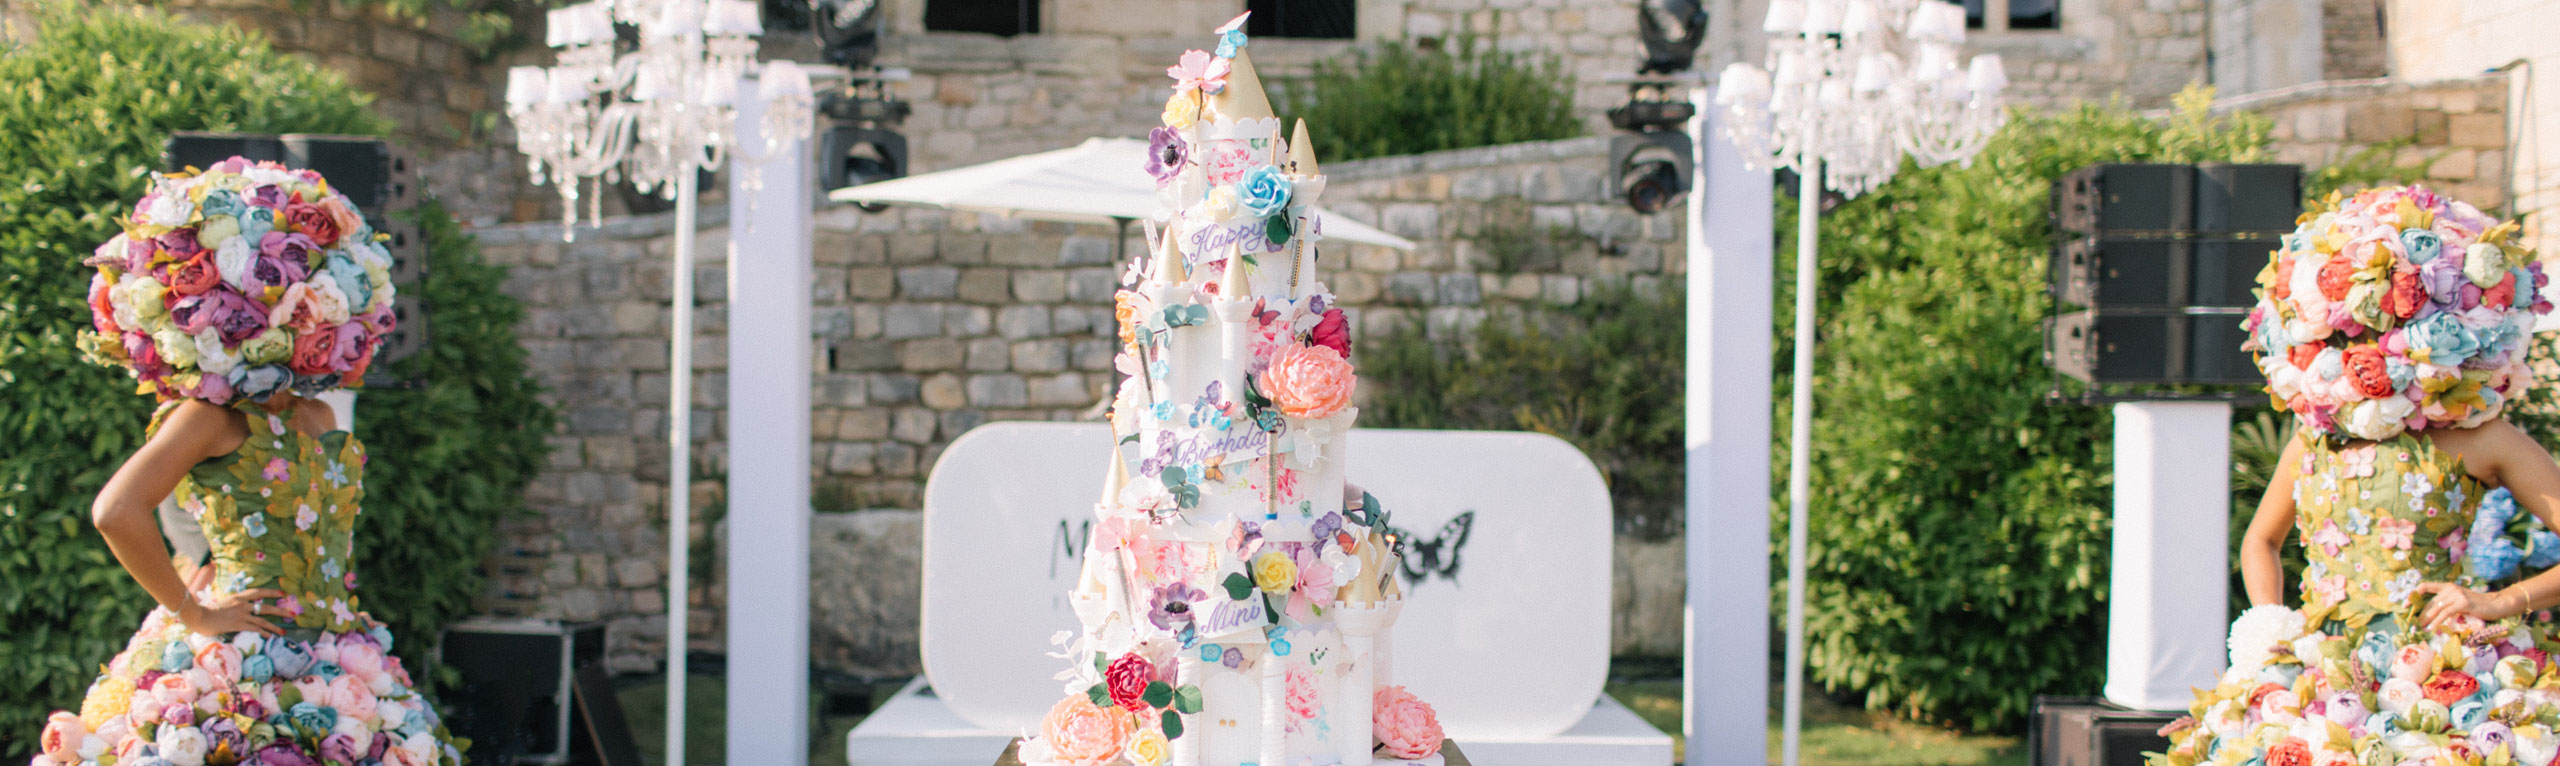 jemma-jade-events-party-birthday-parties-baby-showers-celebrations-6